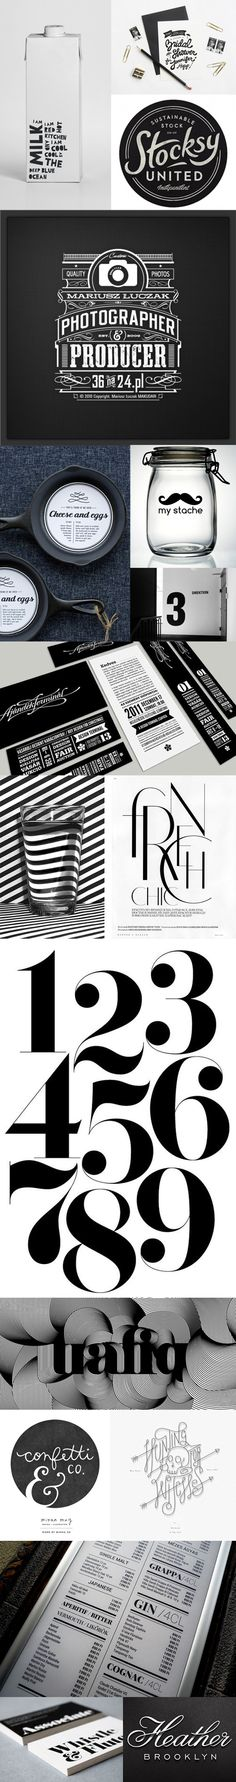 Black and white design - really appealing with contrast and style. Like the use of typography and circular motif.